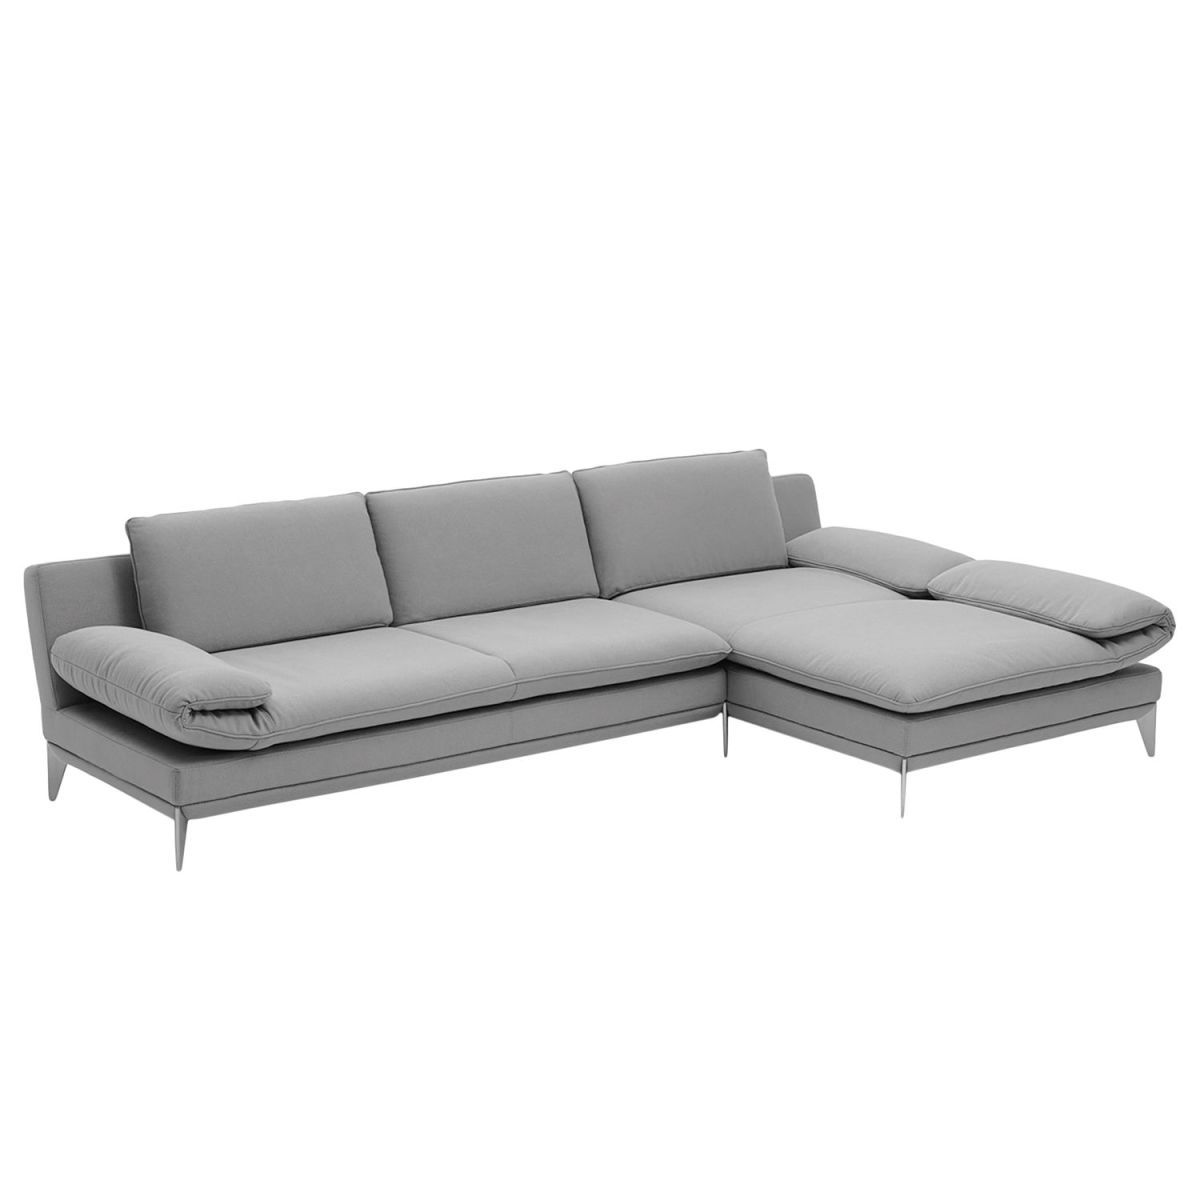 Pin By Ladendirekt On Sofas Couches Sofa Furniture Sofa